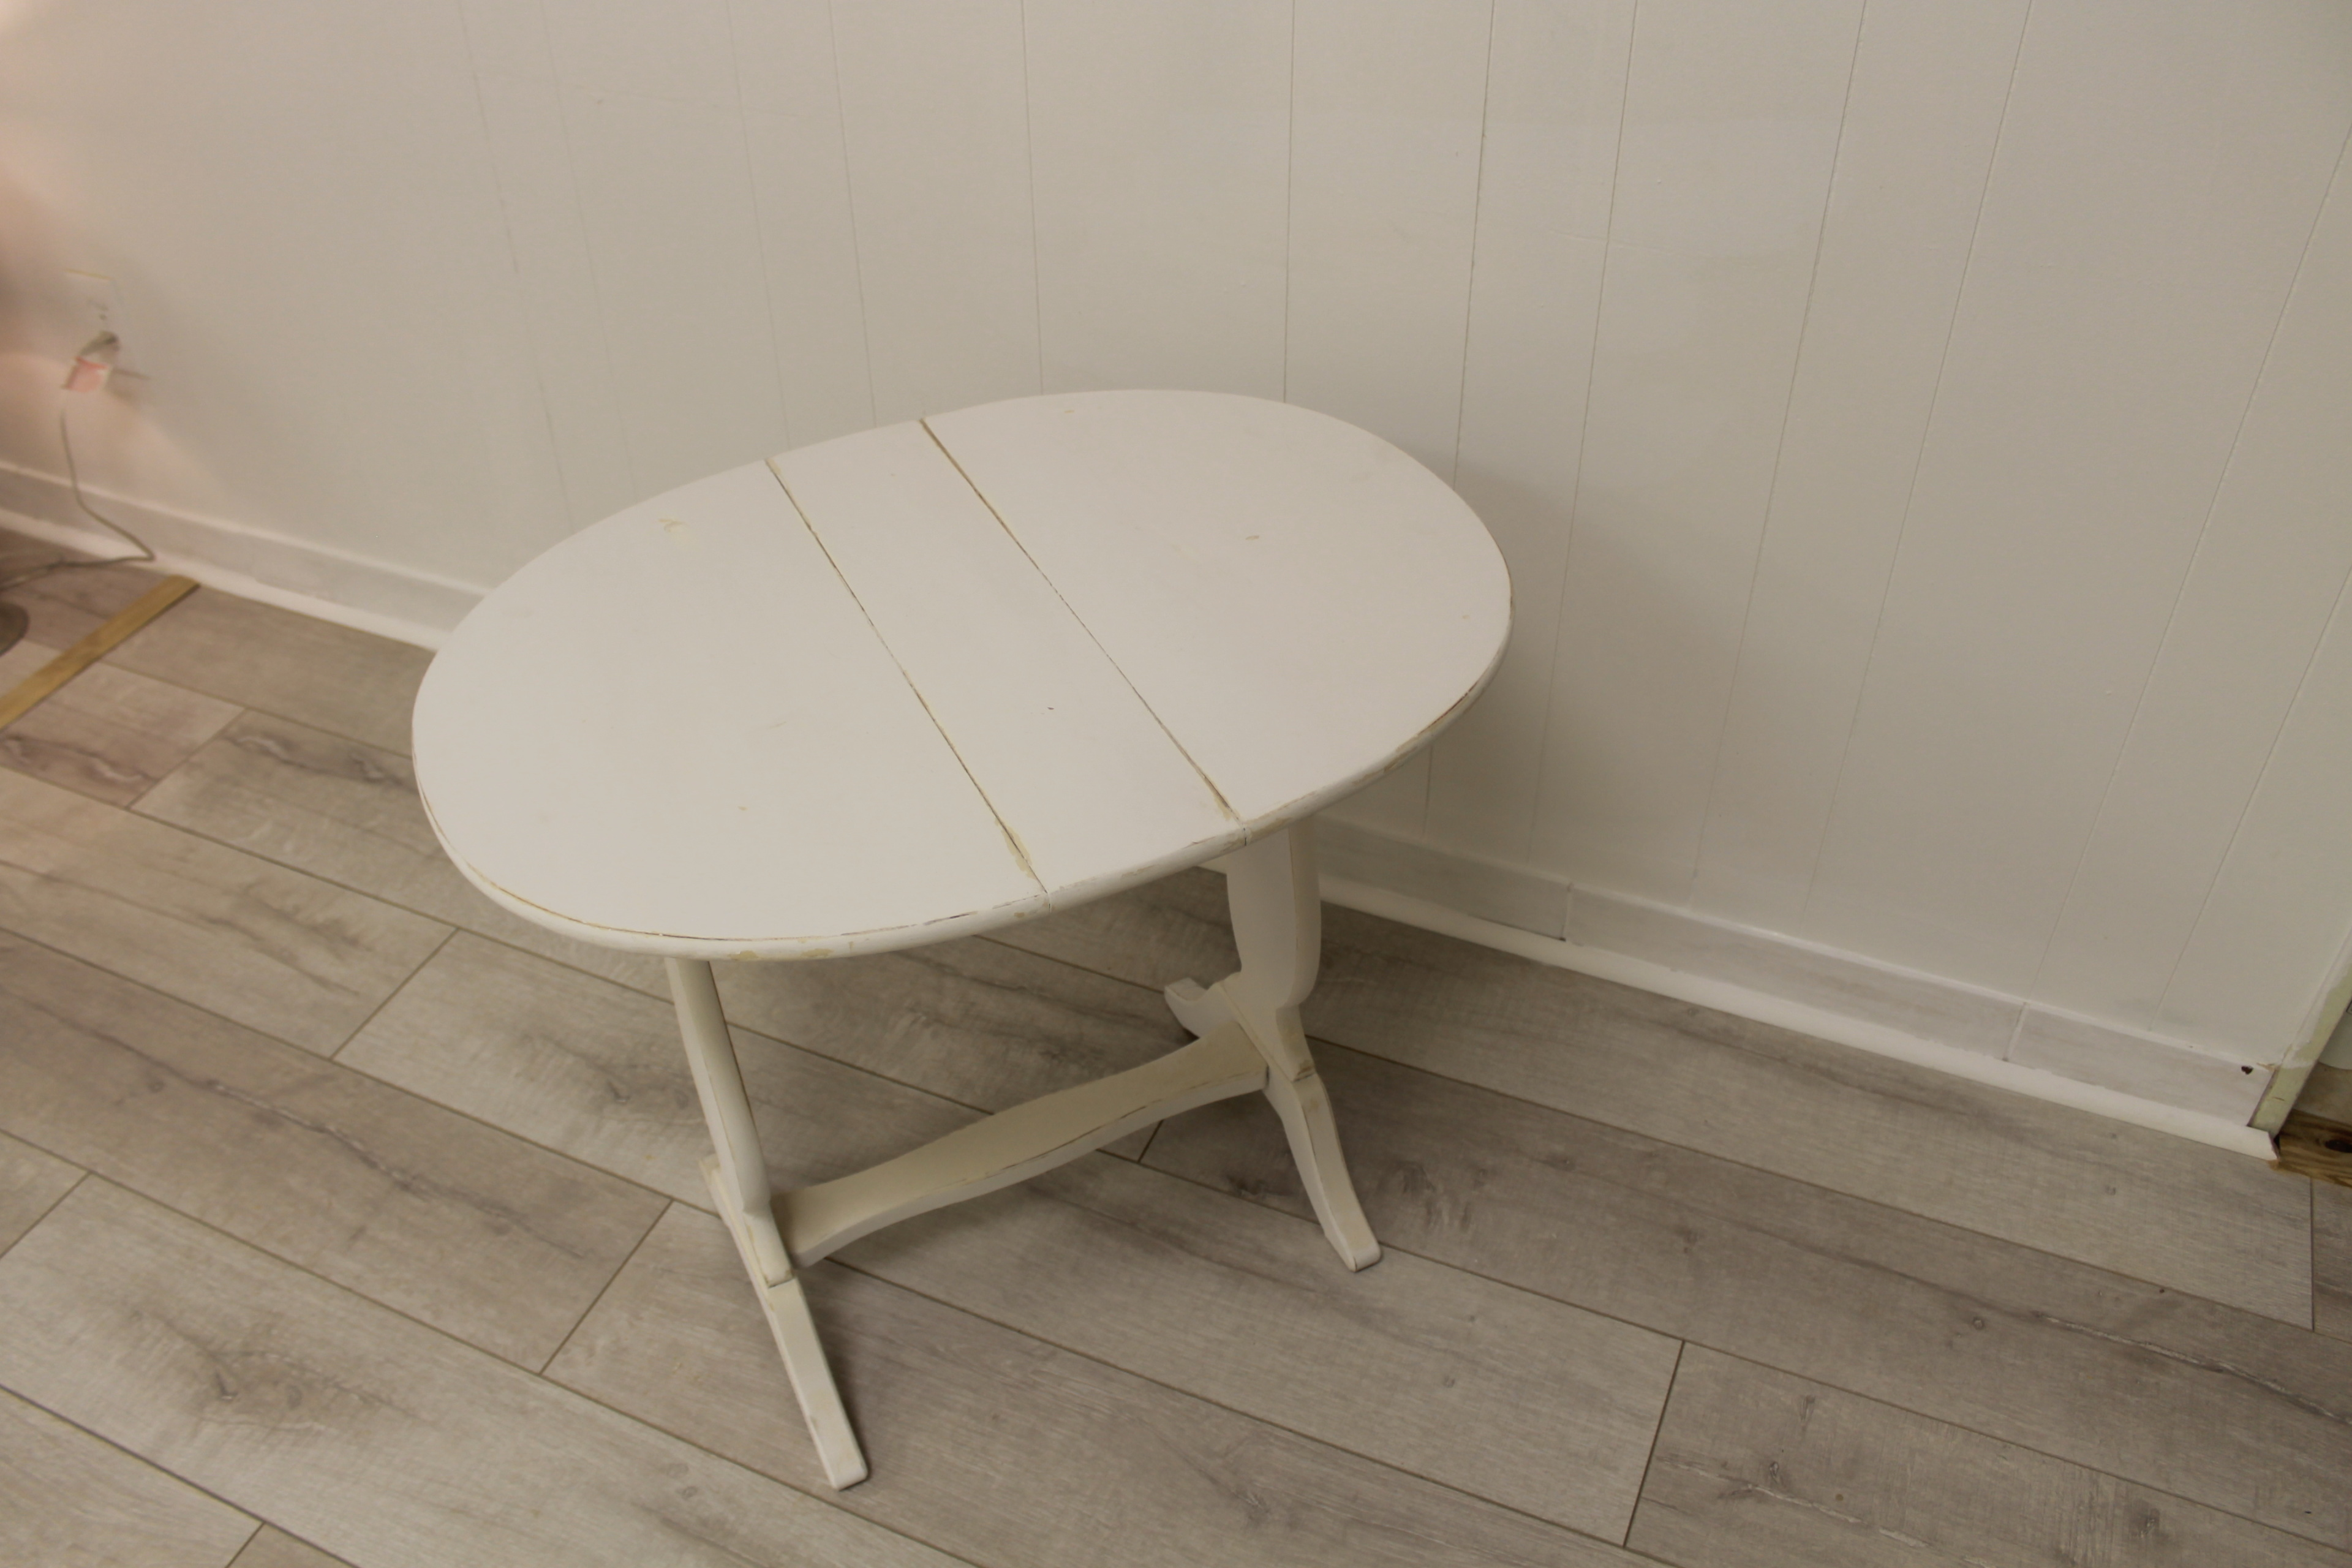 Small Drop Leaf Table With 2 Chairs 2 Swedish Antique Wood Chairs And Small White Drop Leaf Table